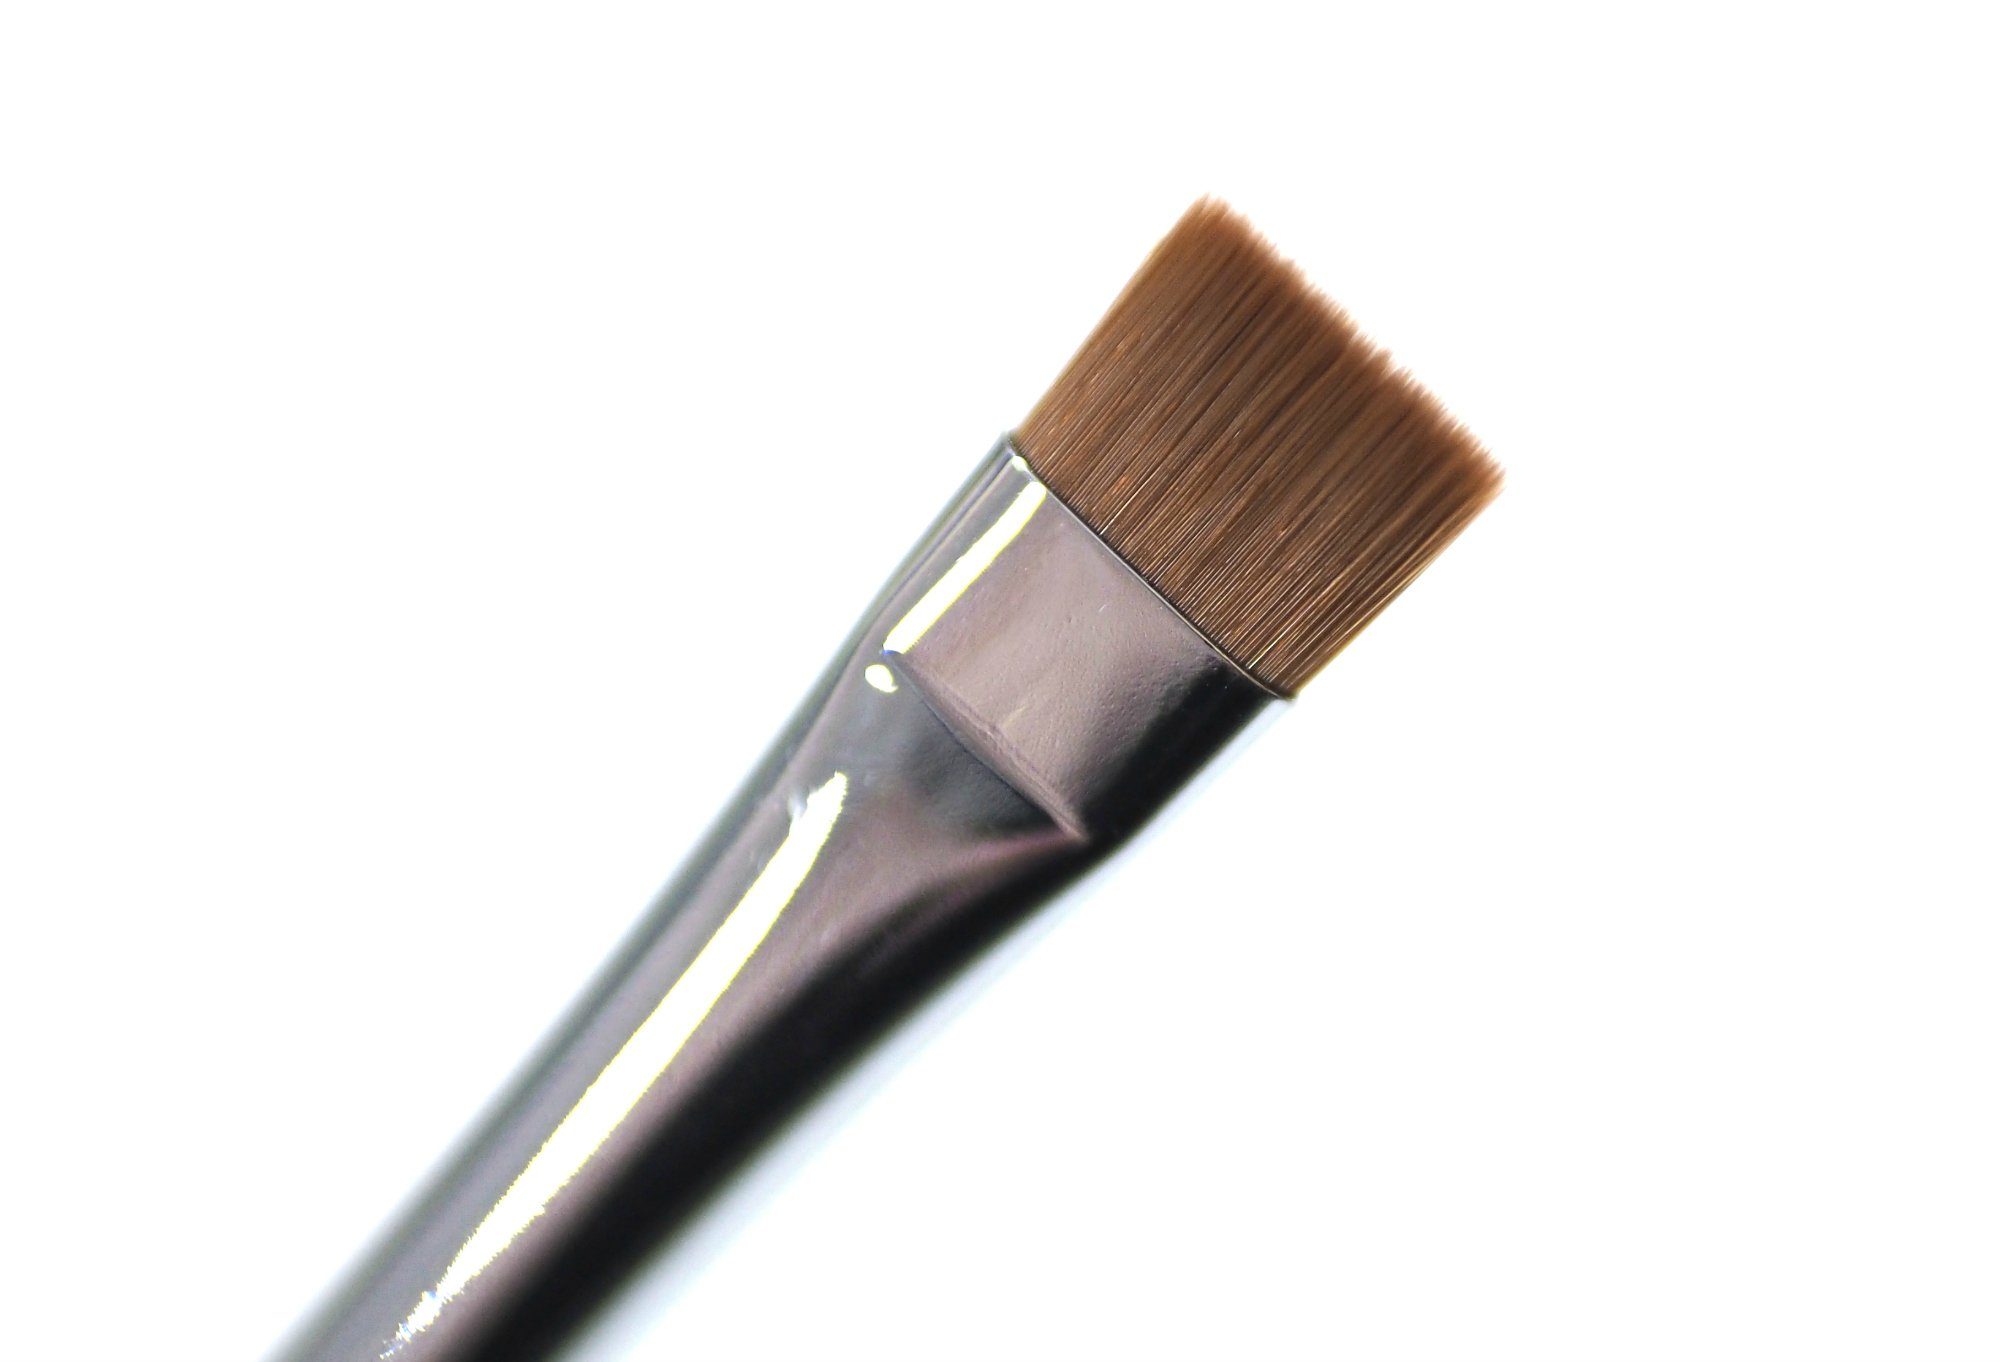 Morphe M432 Pro Flat Liner Definer Brush - The Perfect Tightline Brush under £5!